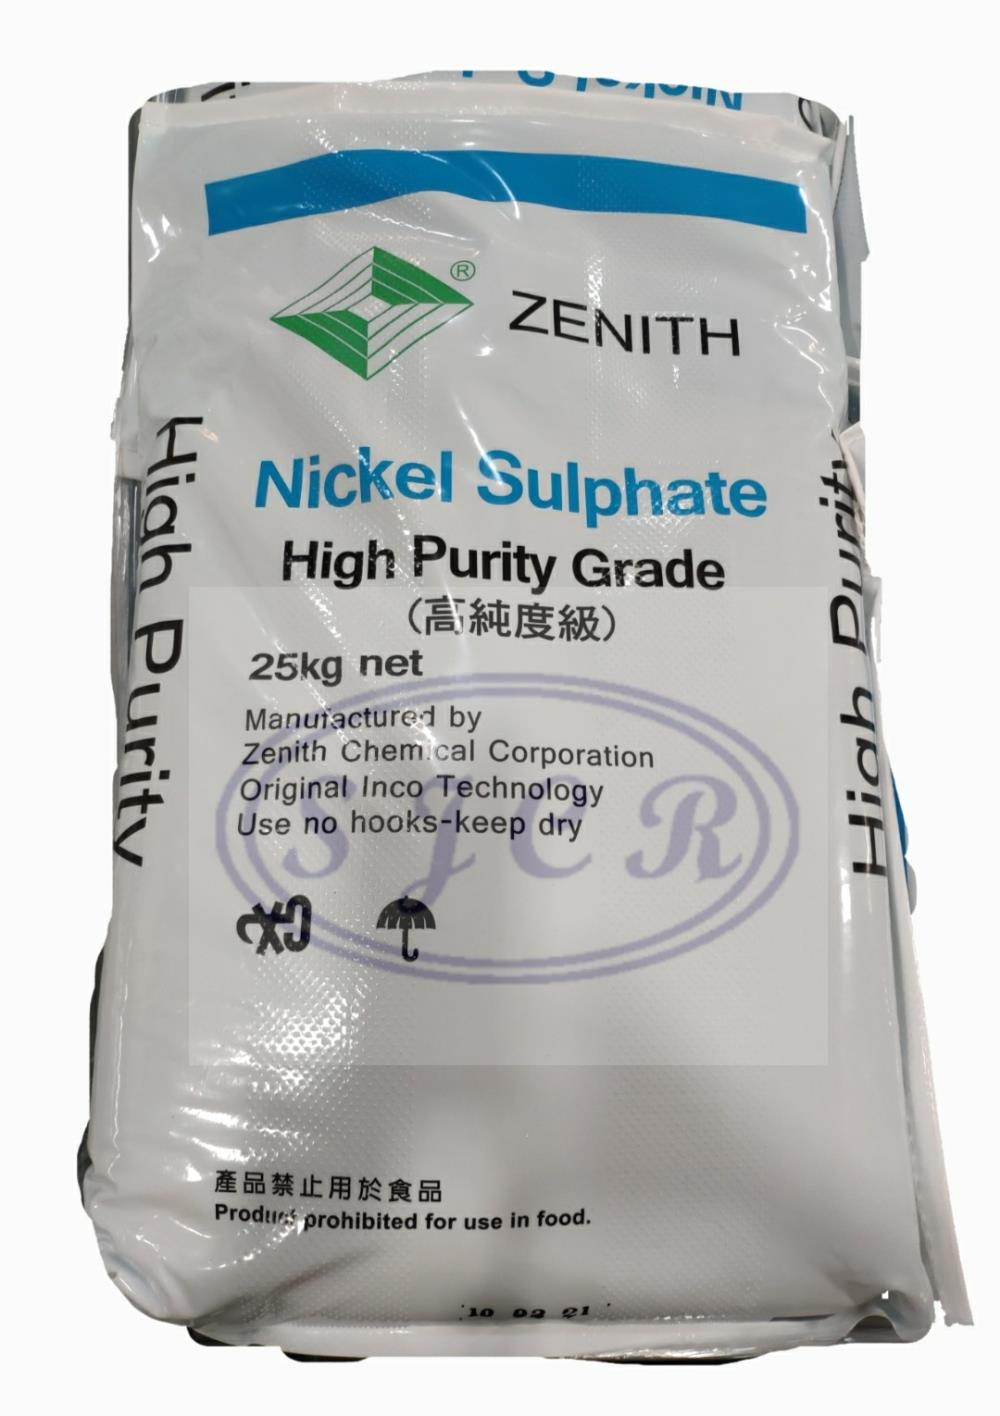 NICKLE SULPHATE (zincomond)